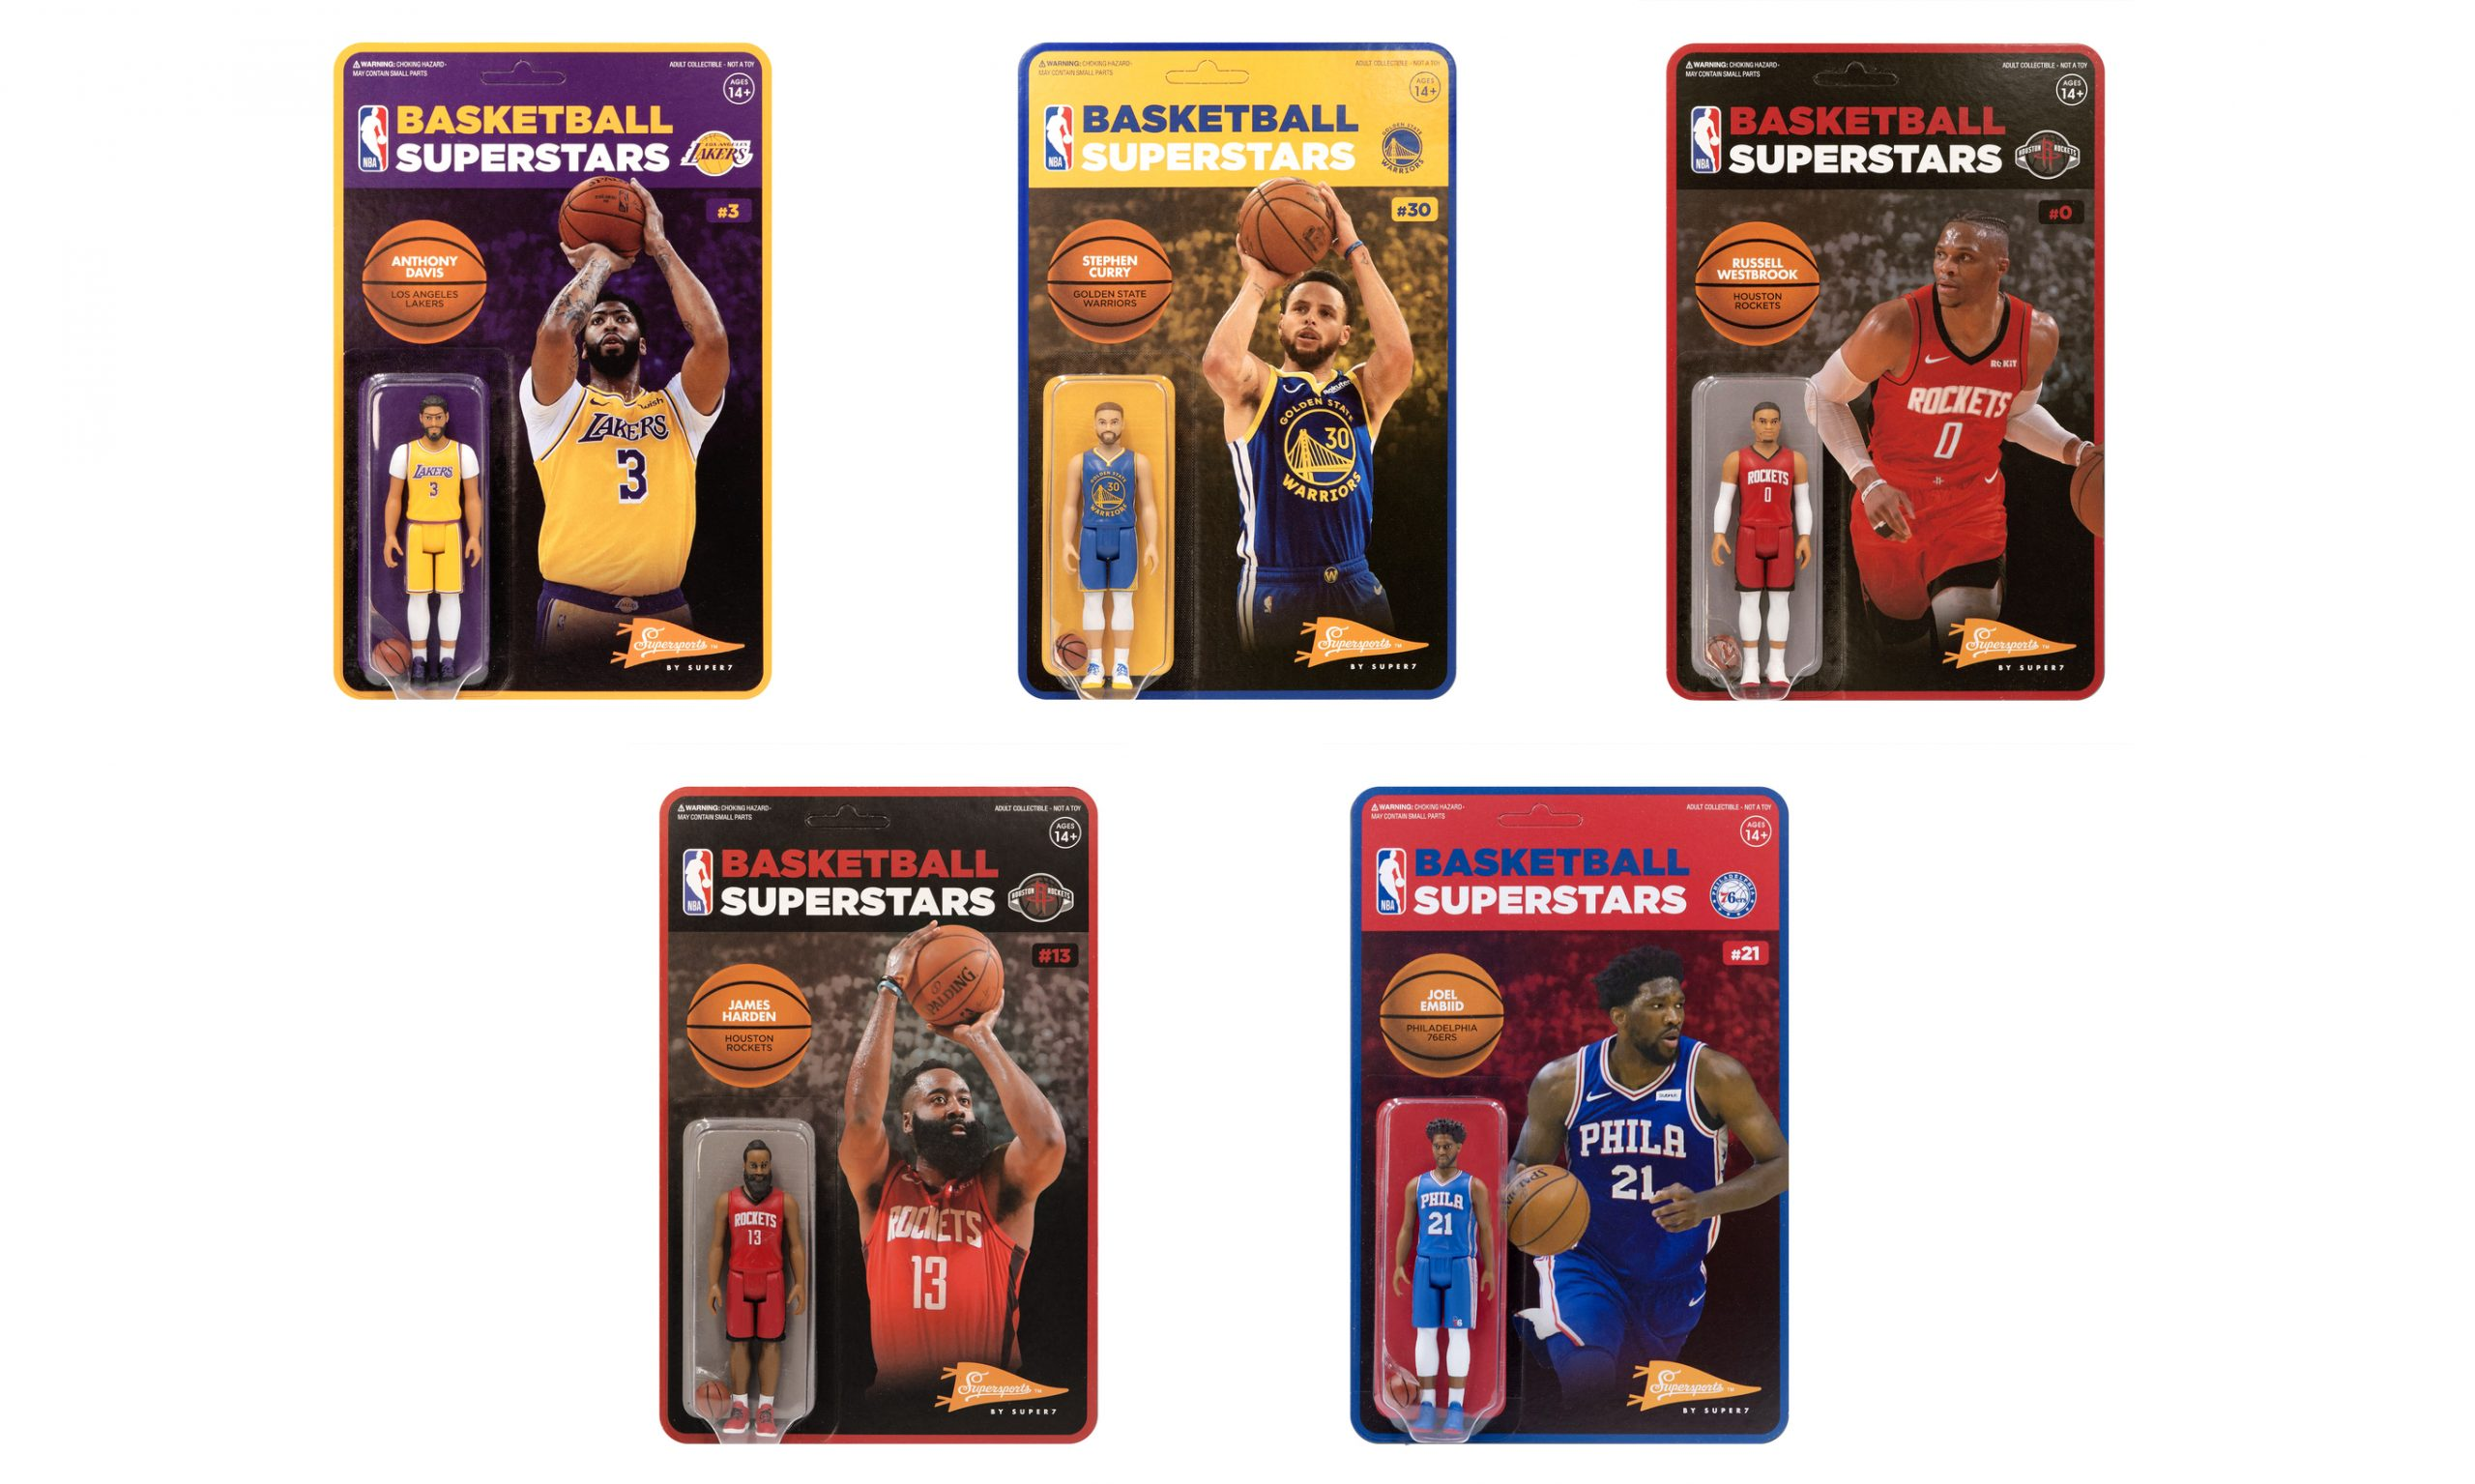 Super7 ReAction Figures 推出 NBA 球星吊卡公仔系列